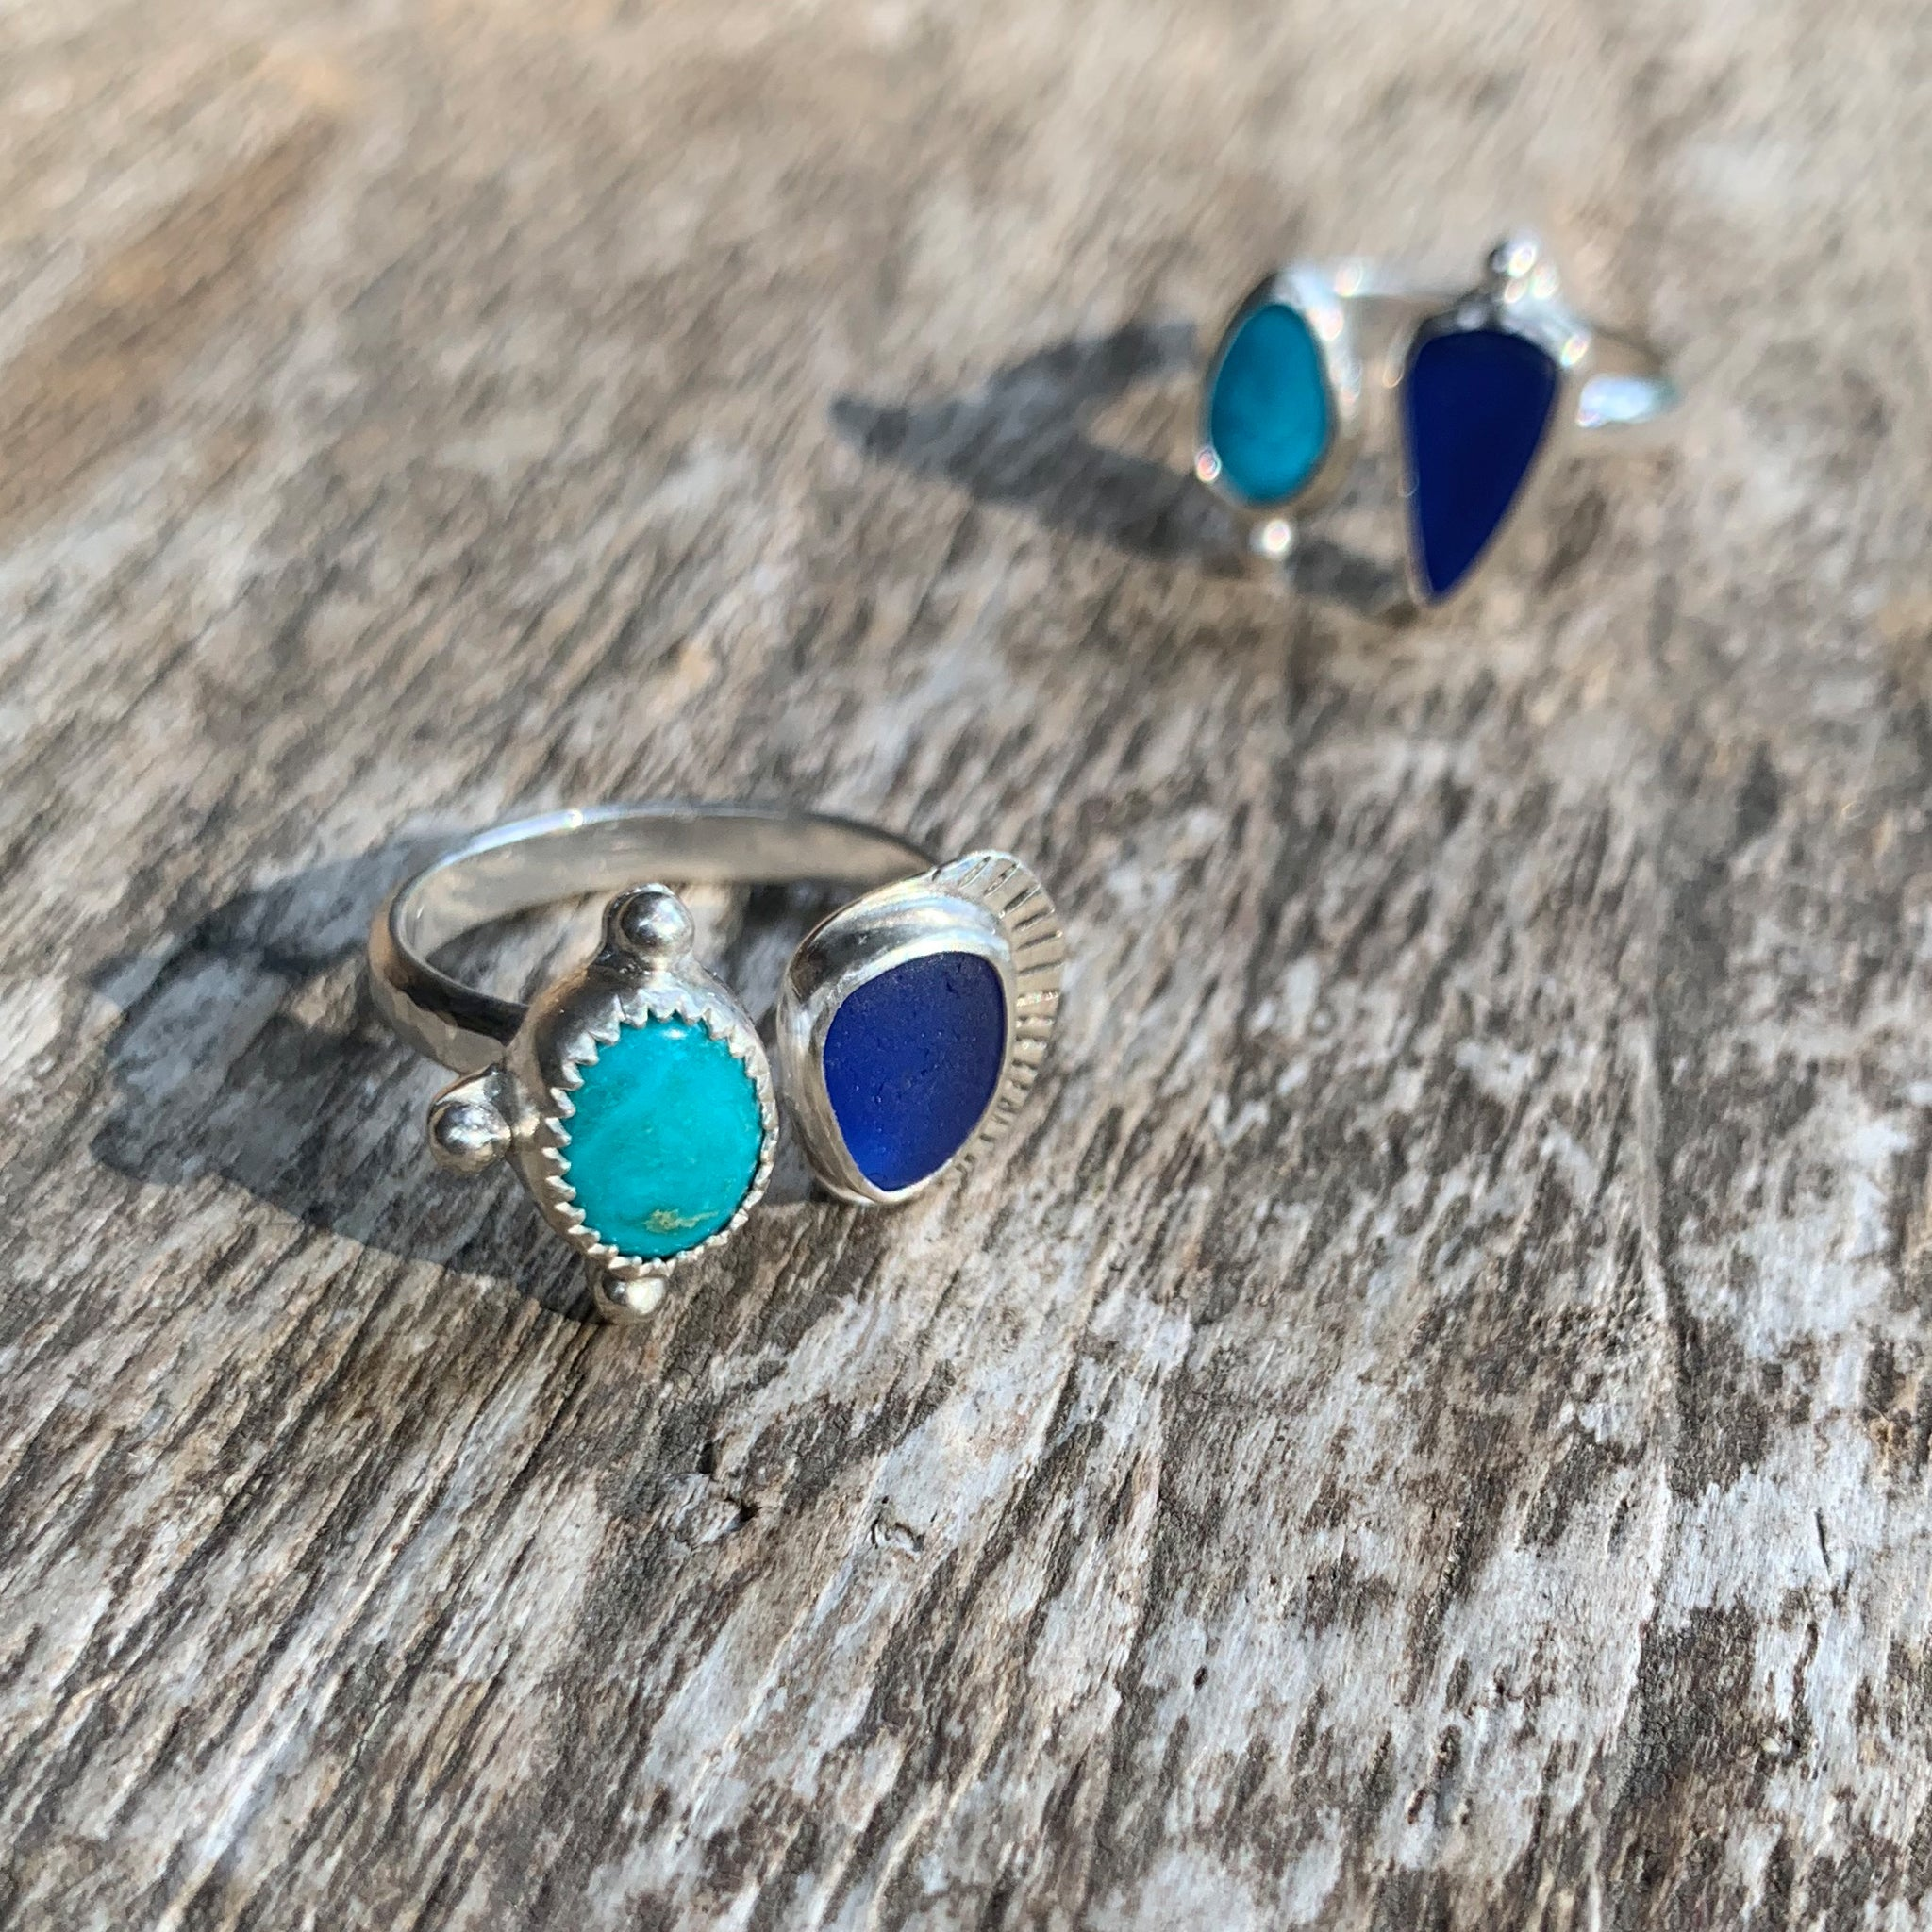 Two Treasures Ring with Turquoise + Seaglass Size 7